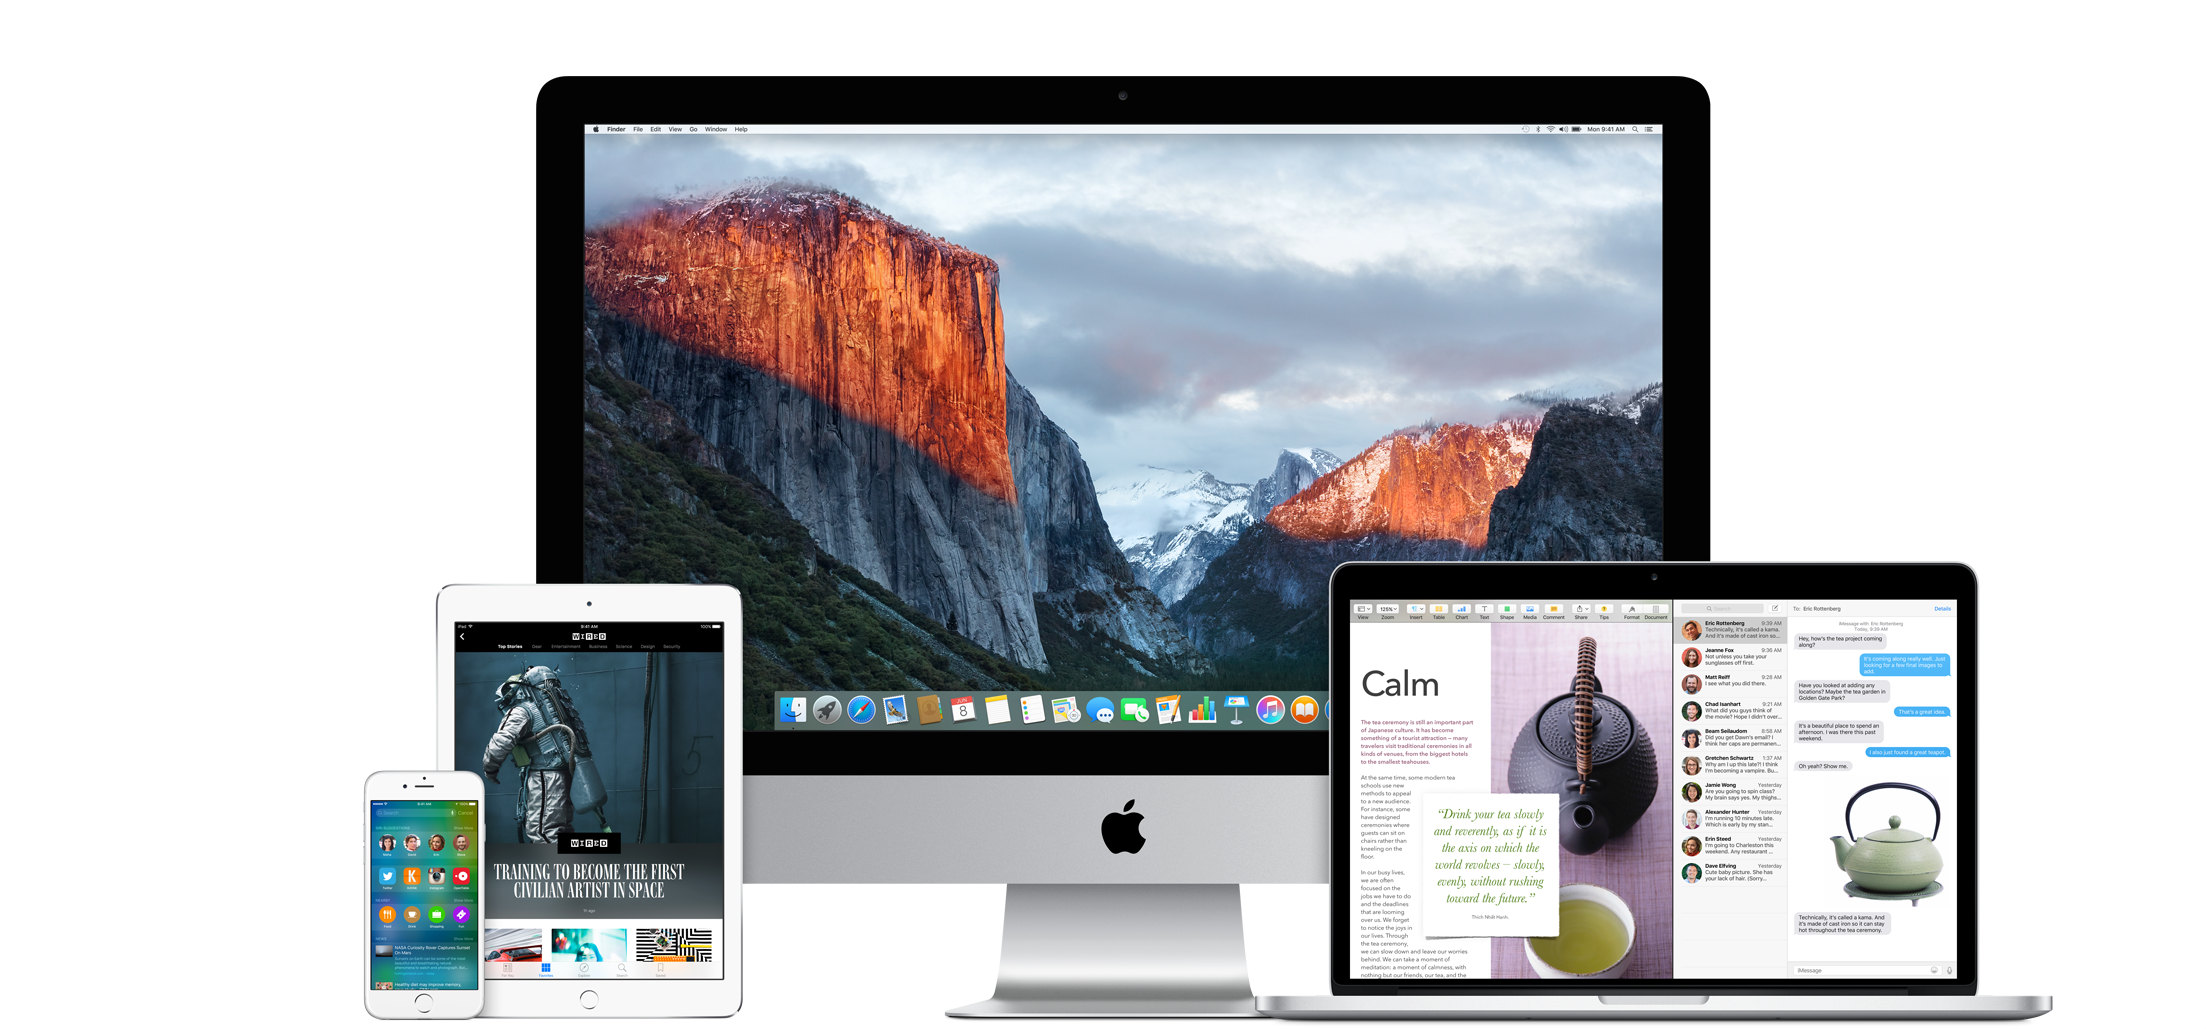 Should you upgrade to Apple's iOS 9 or OS X El Capitan?